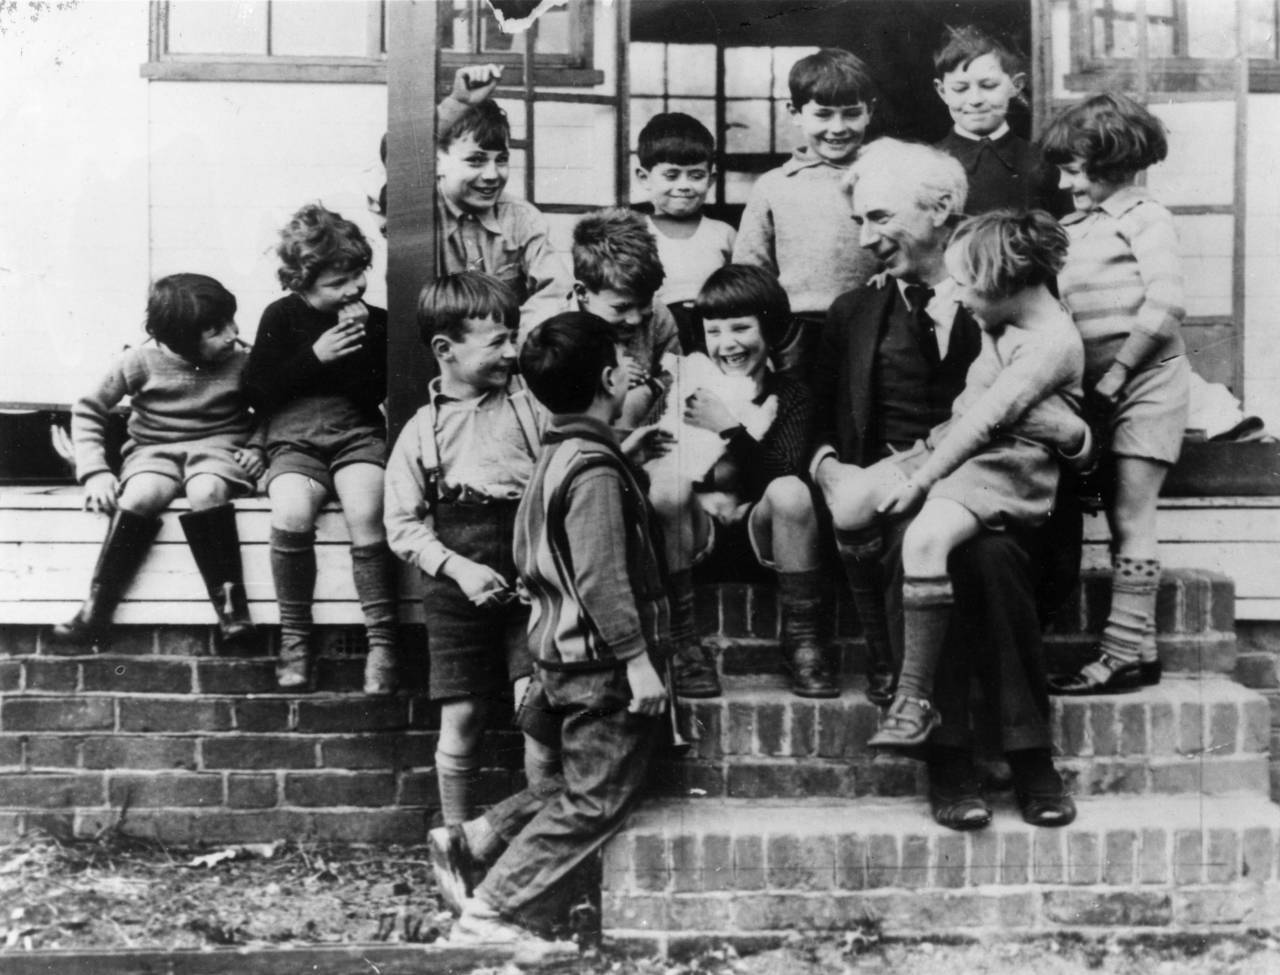 April 1950:  Philosopher, mathematician and author, Bertrand Russell (3rd Earl Russell) (1872 - 1970) with a group of children at Beacon High School.  (Photo by Keystone/Getty Images)